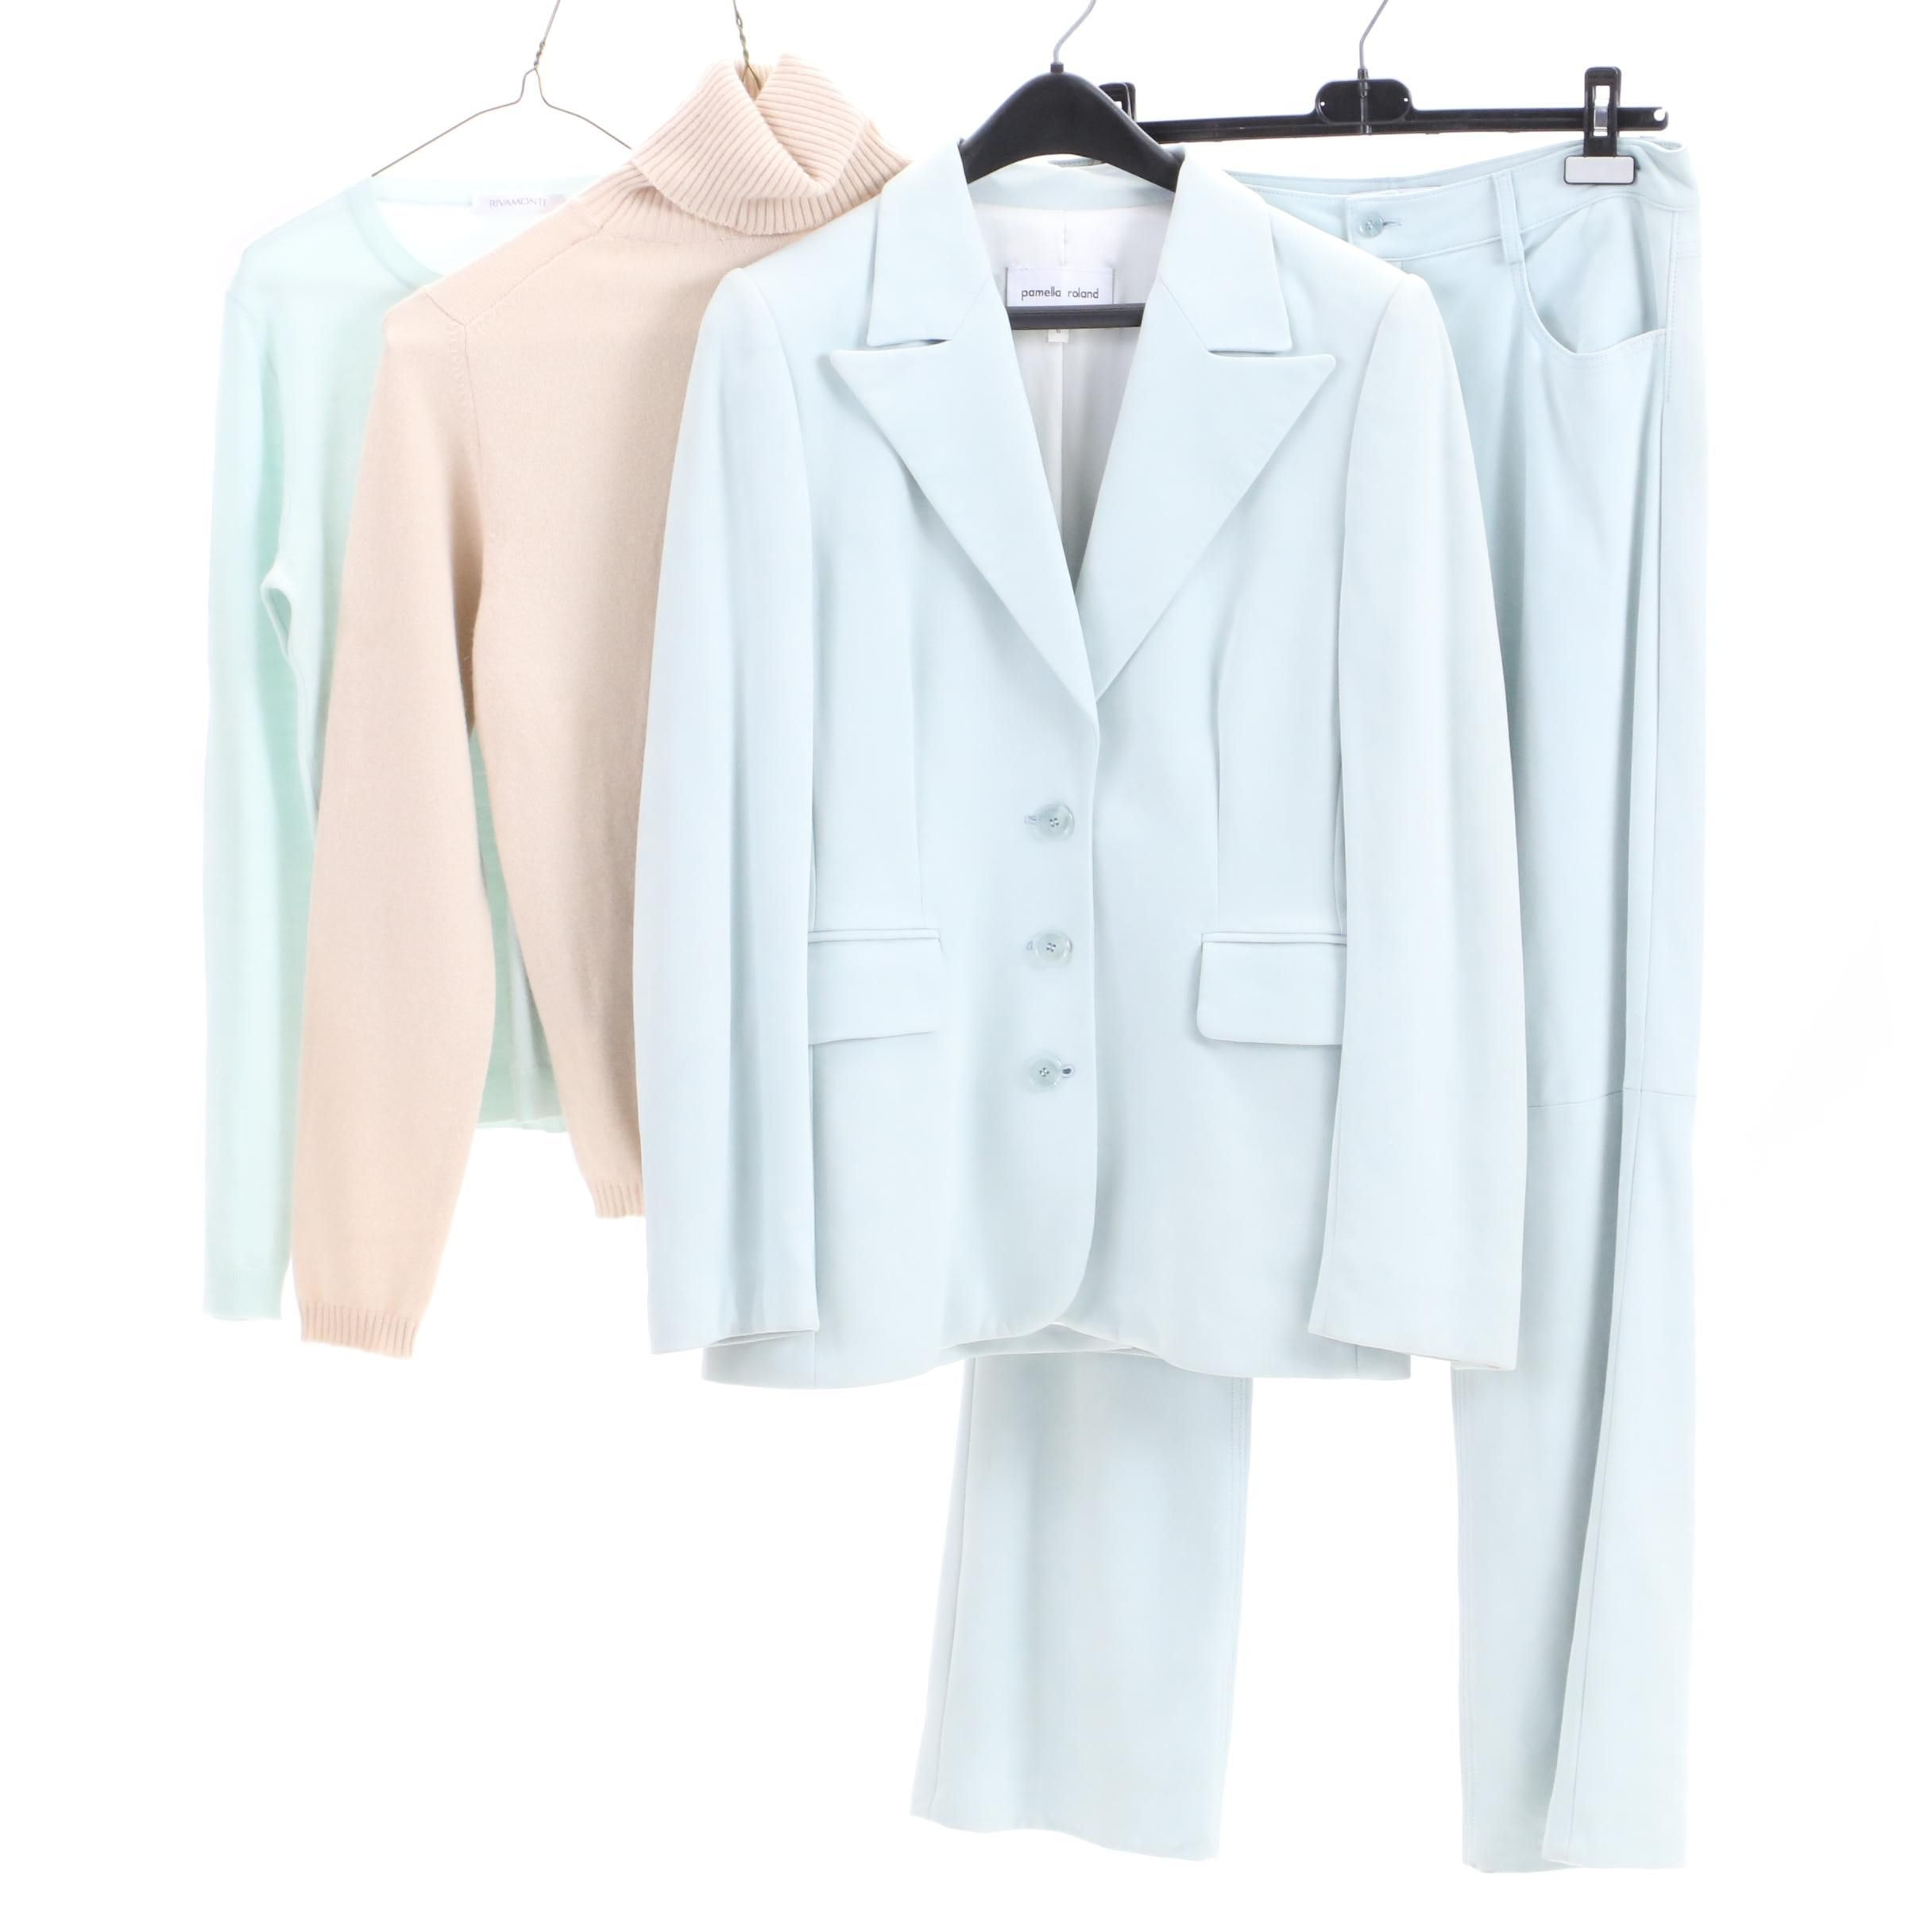 Pamella Roland Leather Suit with Wool and Cashmere Sweaters